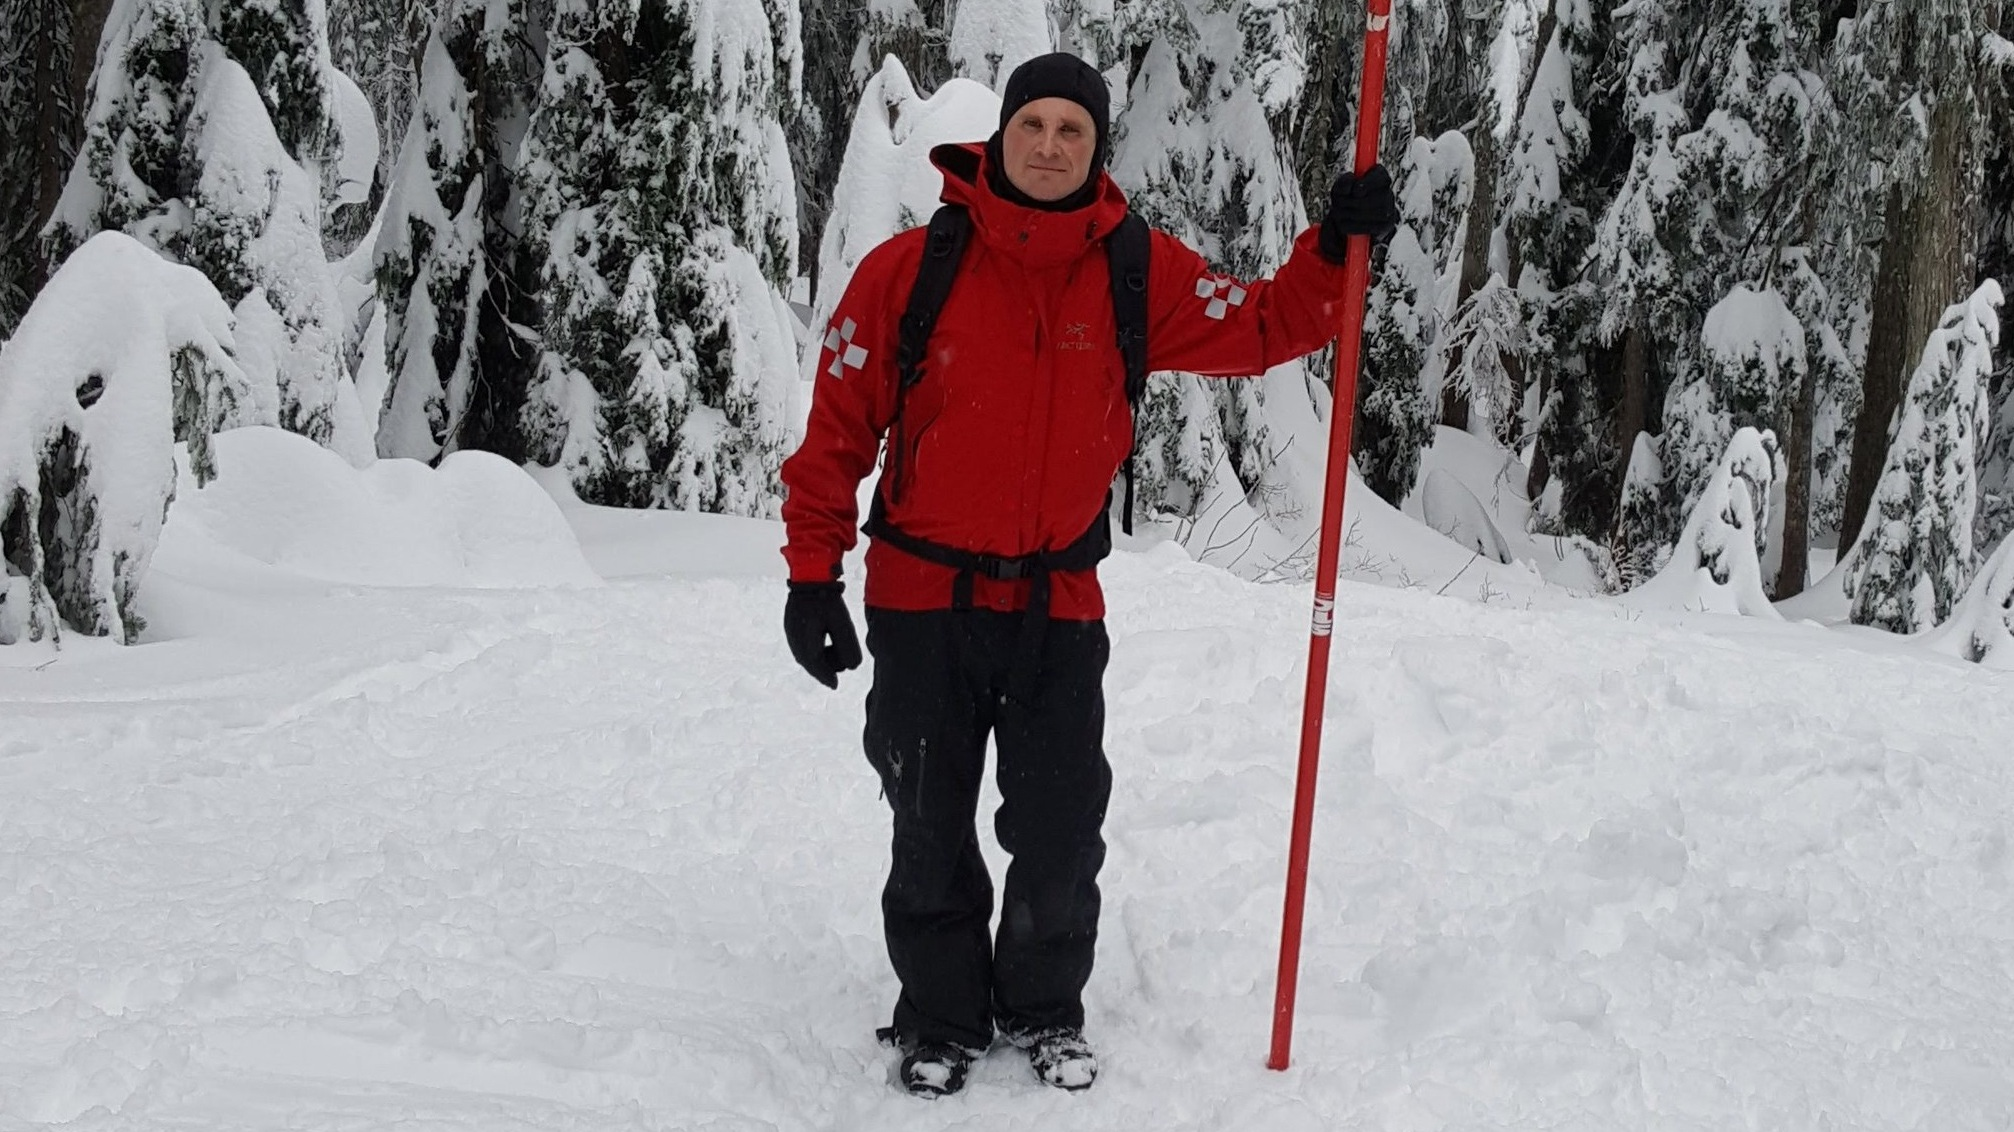 Kieran Hartle (PCP-IV)  is paramedic with the British Columbia Ambulance Service, and a Nordic Ski Patroller at Cypress Mountain. He is one of the first Canadian Red Cross Wilderness First Responder Instructors, and has contributed to that program's development.